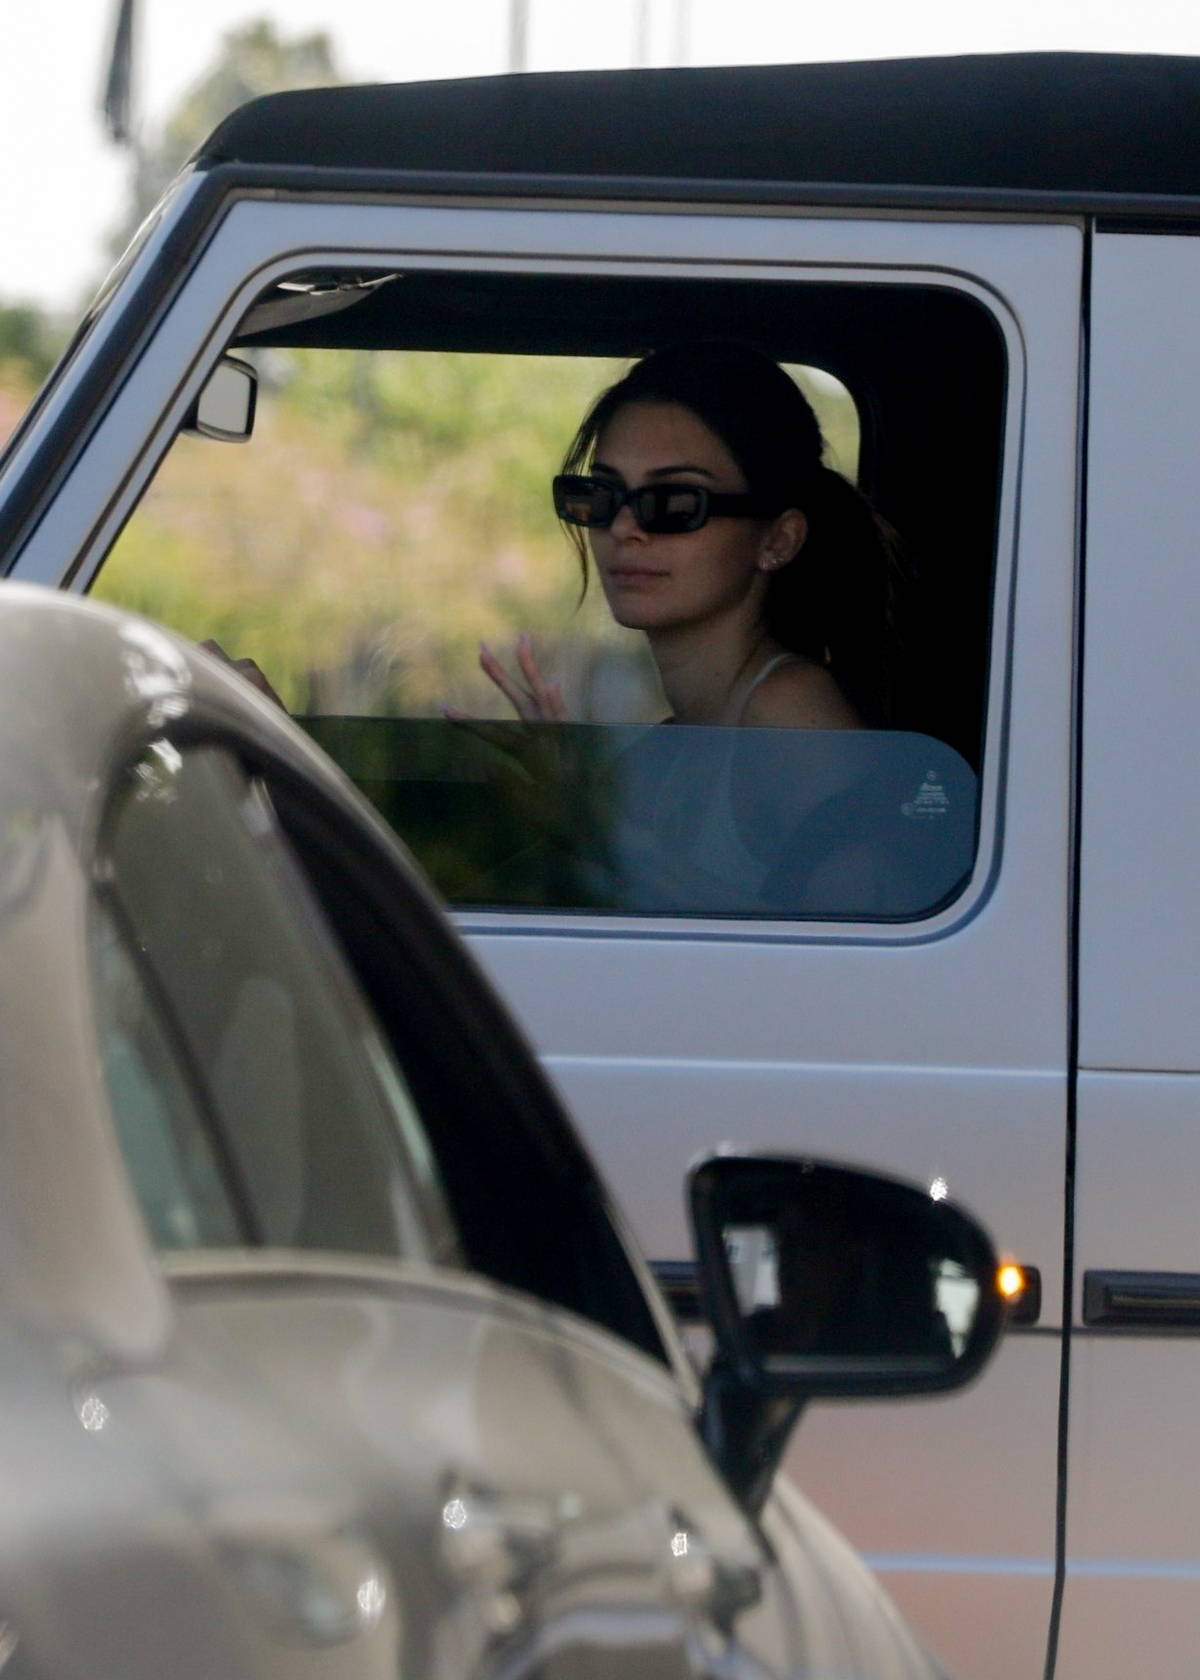 Kendall Jenner stops traffic in her convertible Mercedes G-Wagon while leaving the gym in Beverly Hills, California